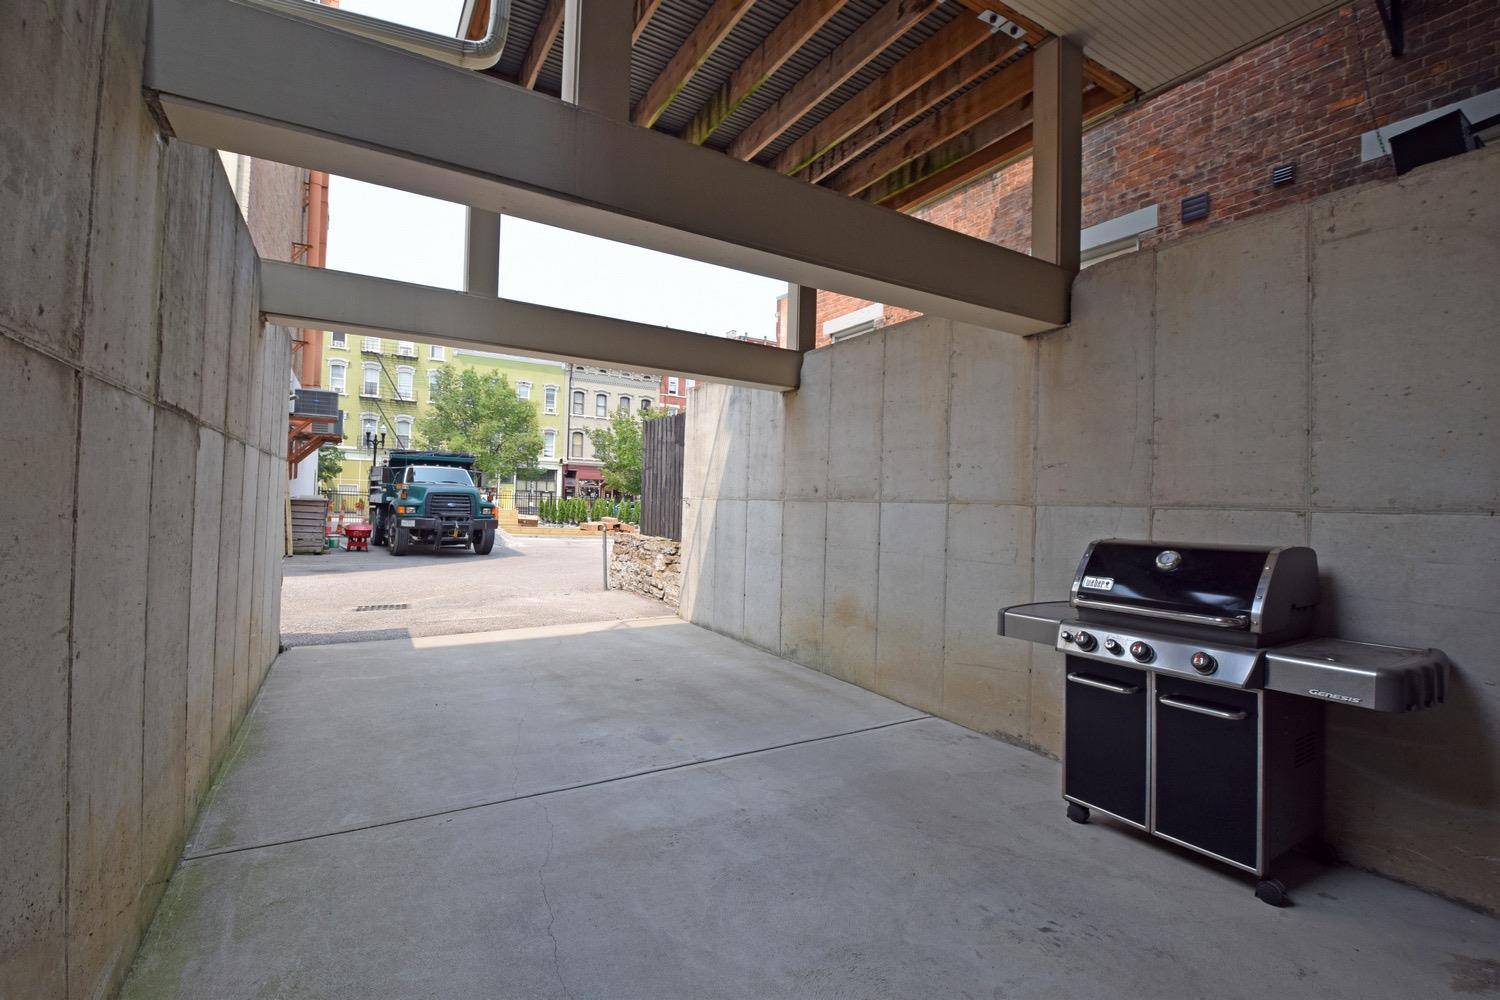 Covered tandem parking for 2 cars with rear access to kitchen